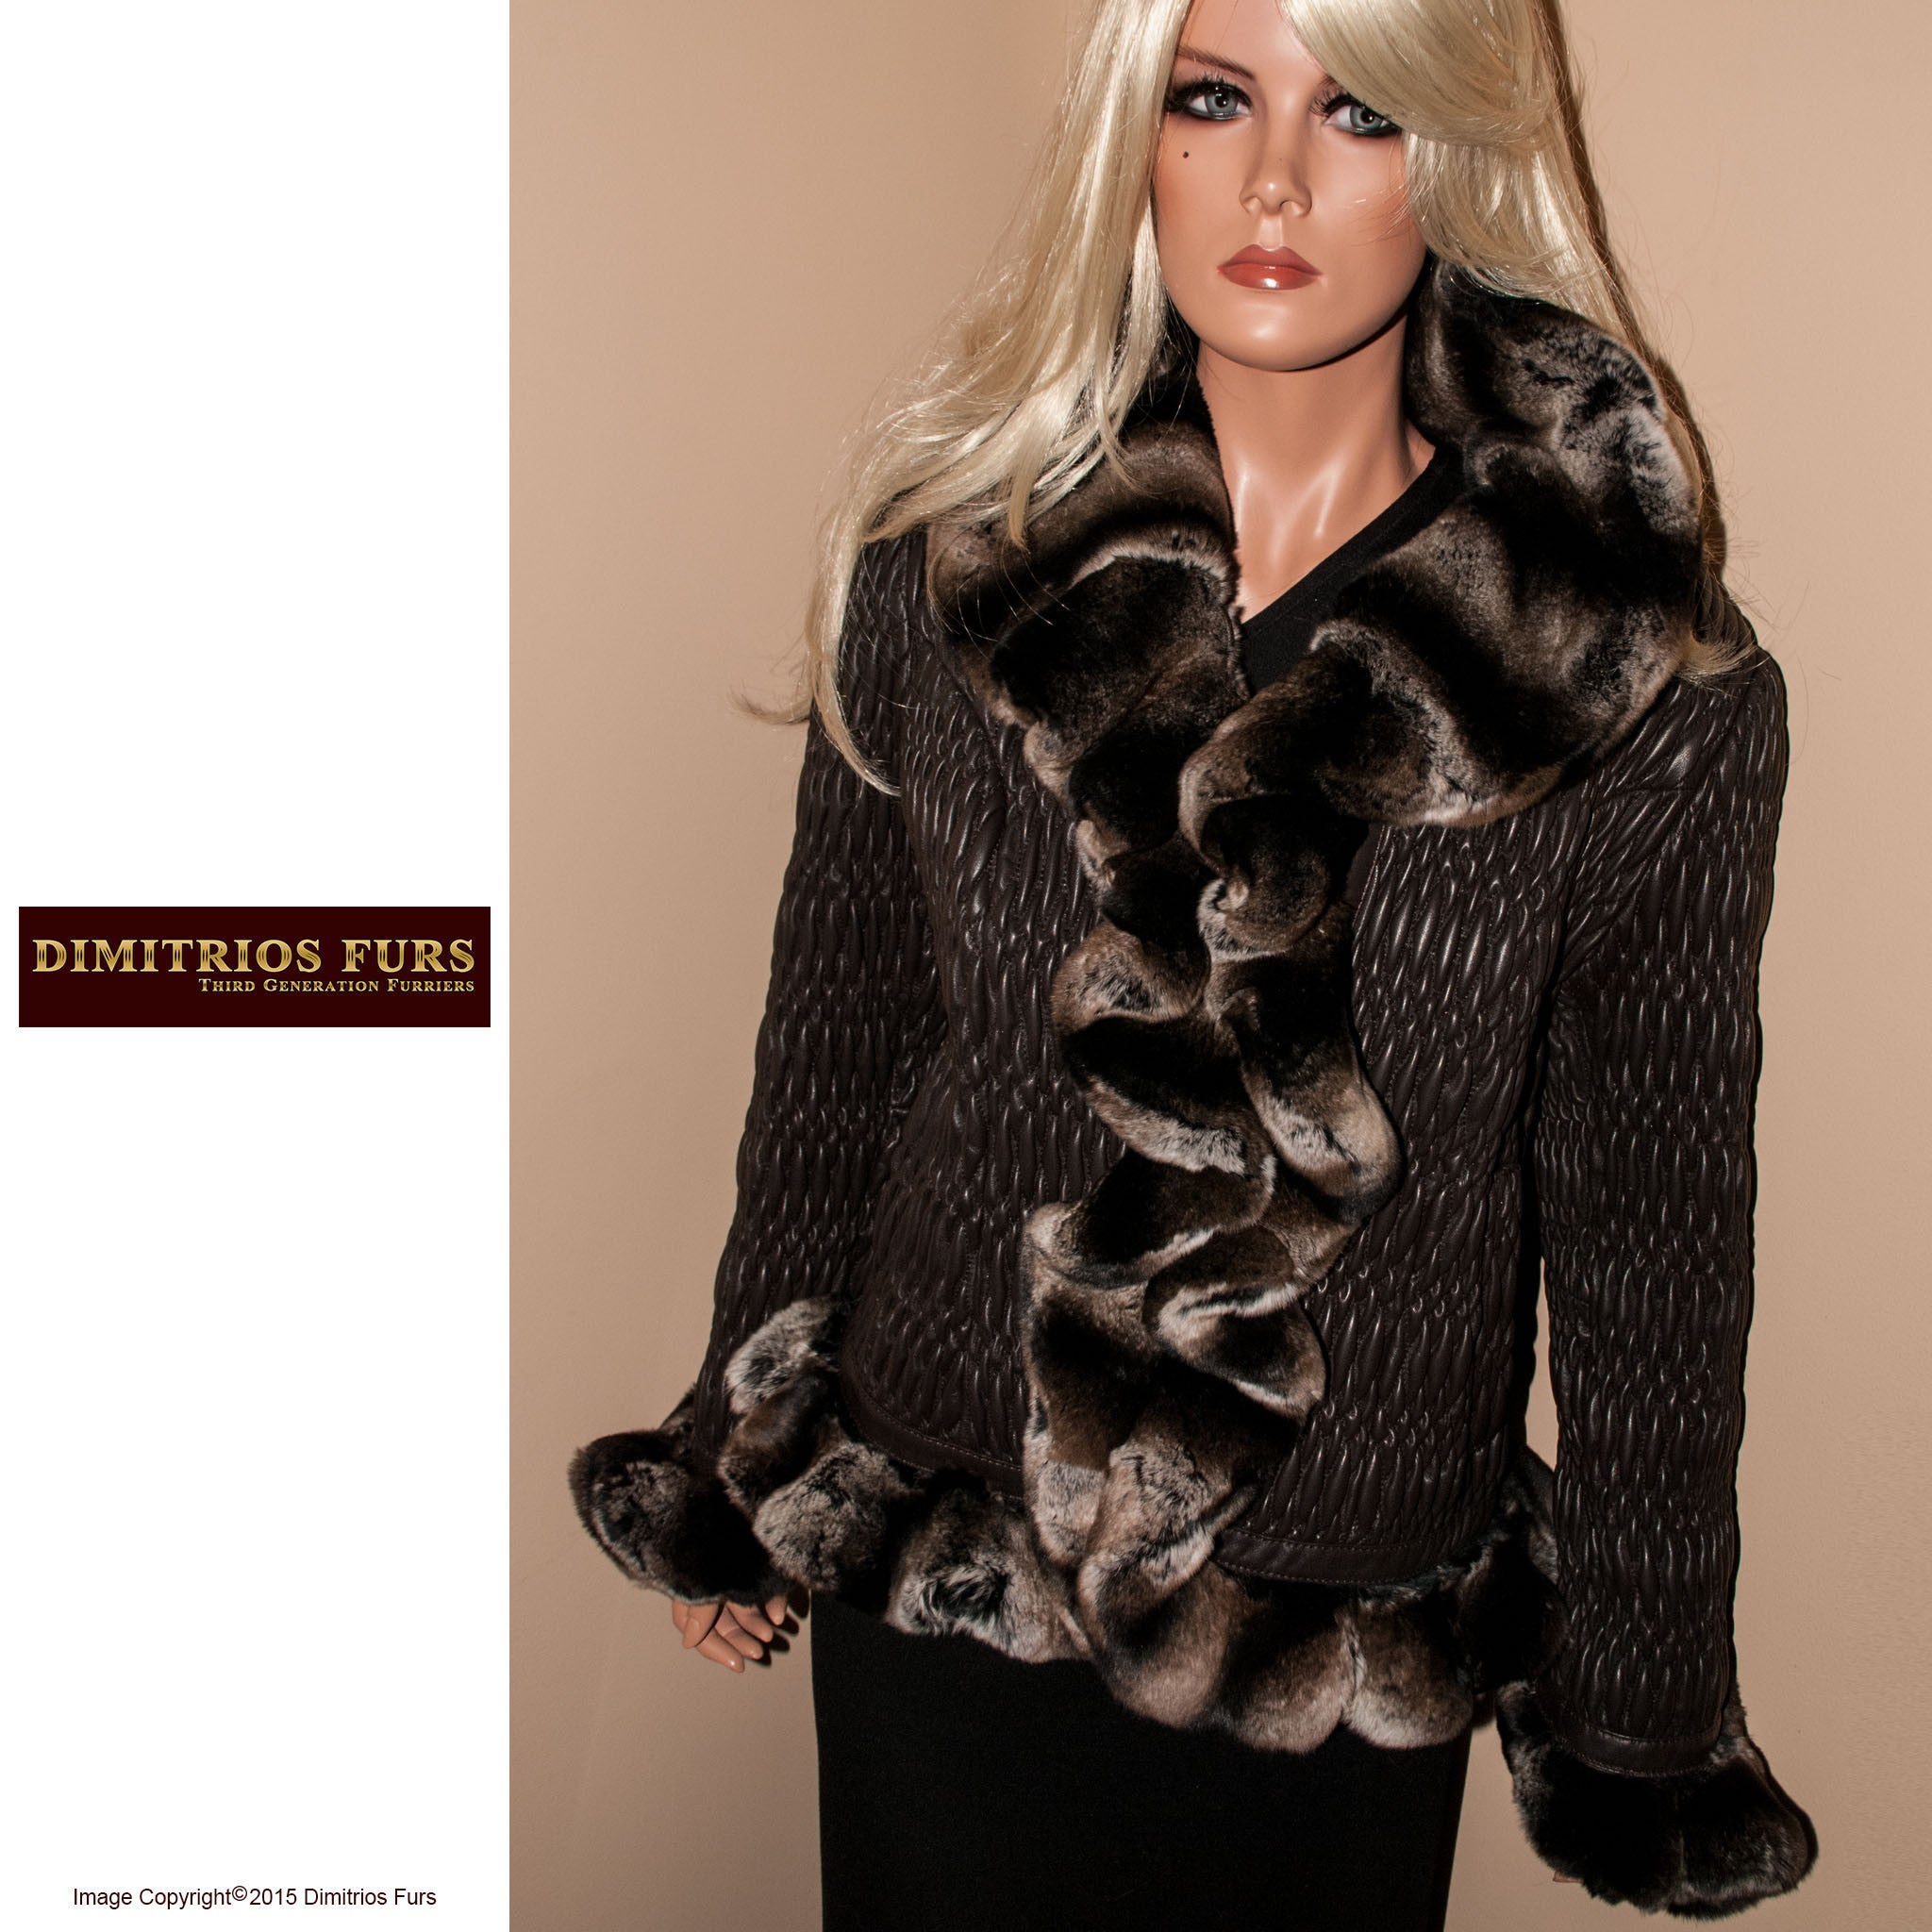 51c482912 Products Page 3 - Dimitrios Furs